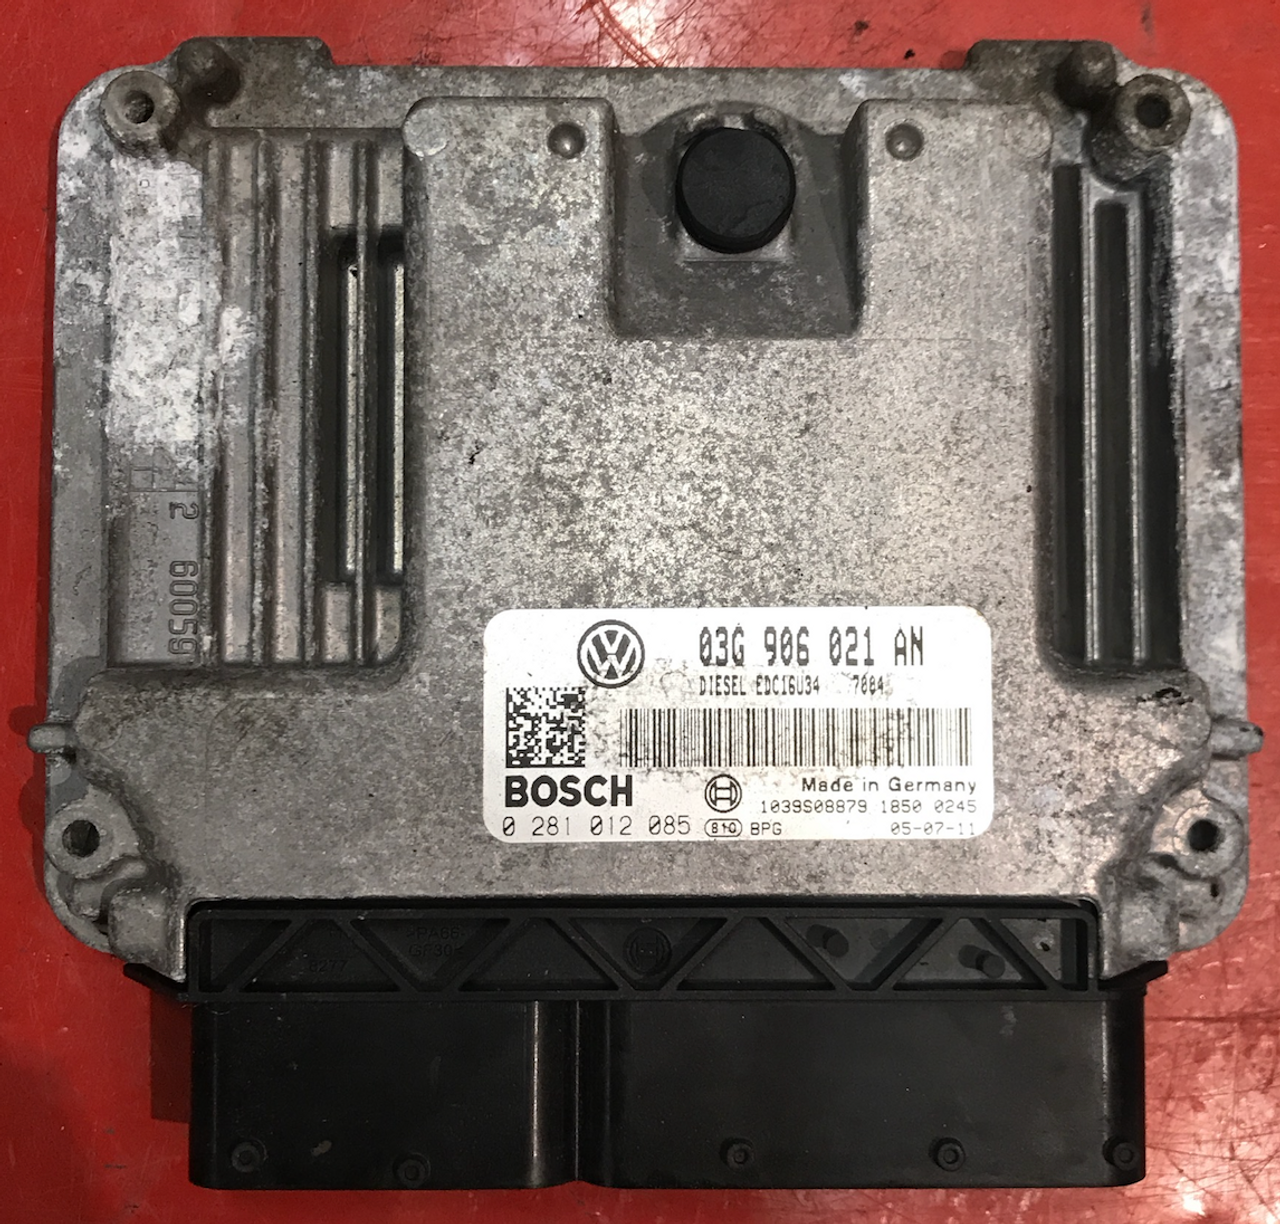 Plug & Play Bosch Engine ECU, VW Golf V / Jetta 1 9 TDI, 0281012085, 0 281  012 085, 03G906021AN, 03G 906 021 AN, EDC16U34